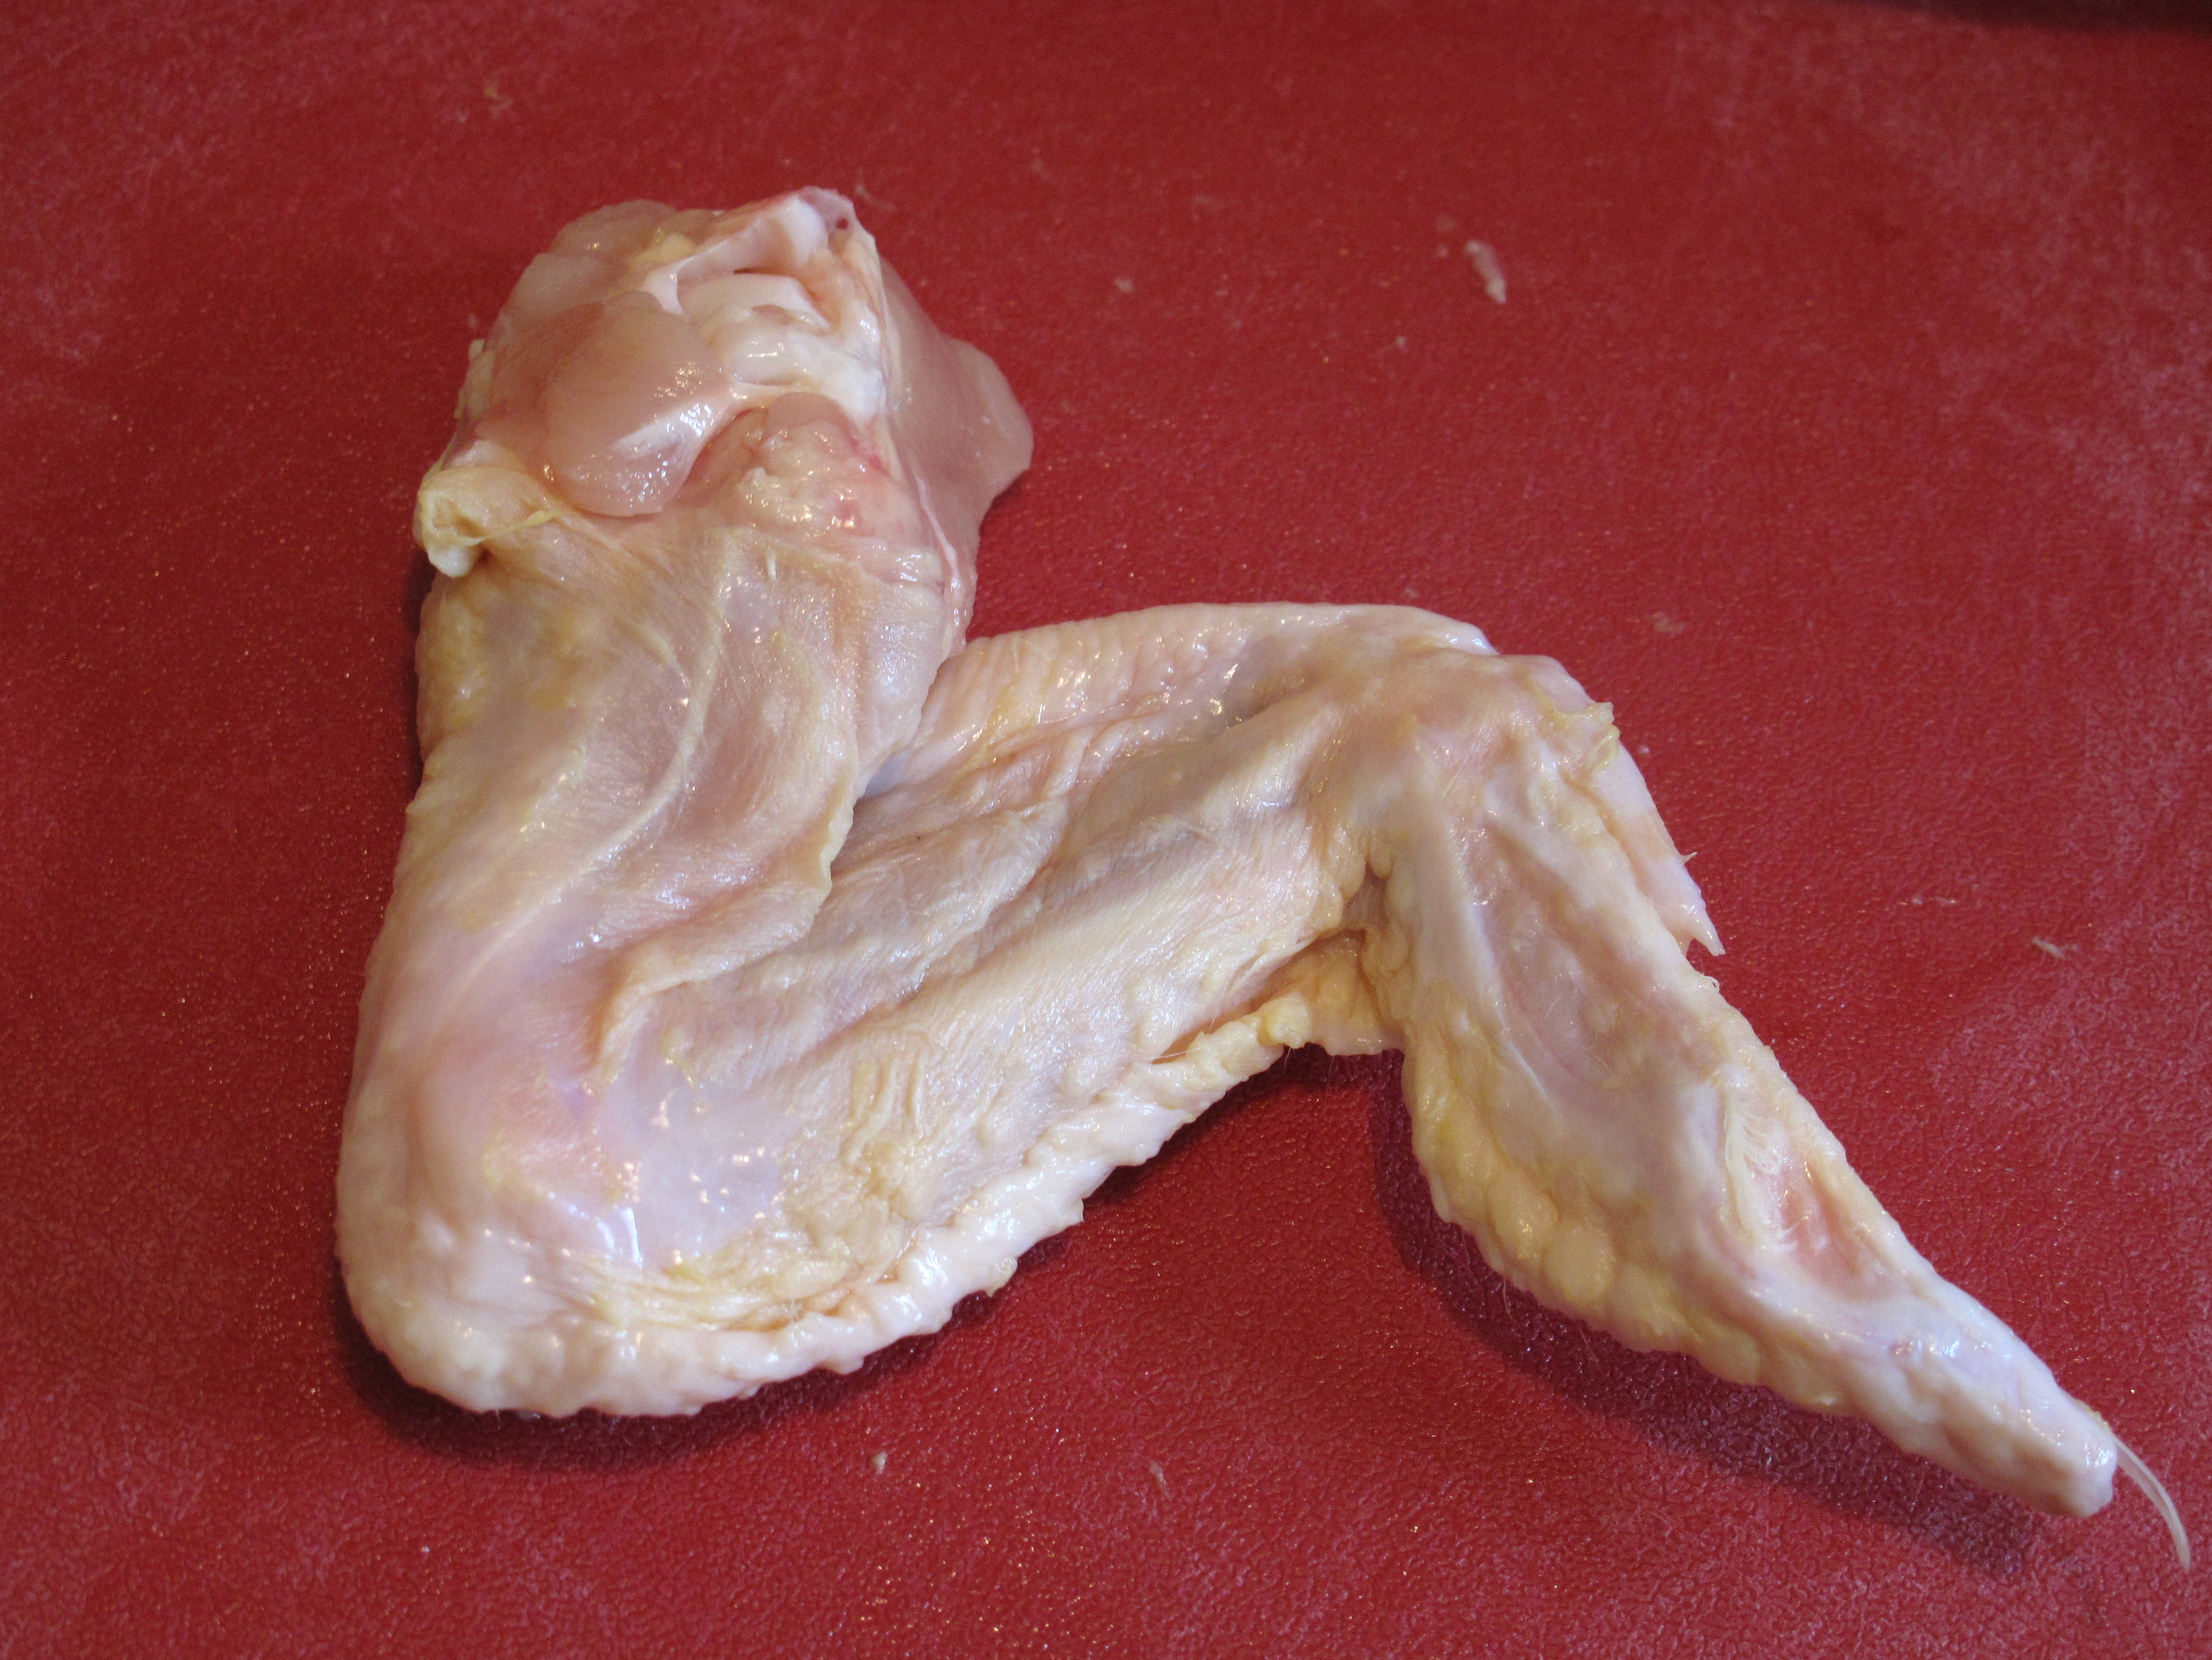 A full chicken wing (bottom view shown here) will have two distinct joints.